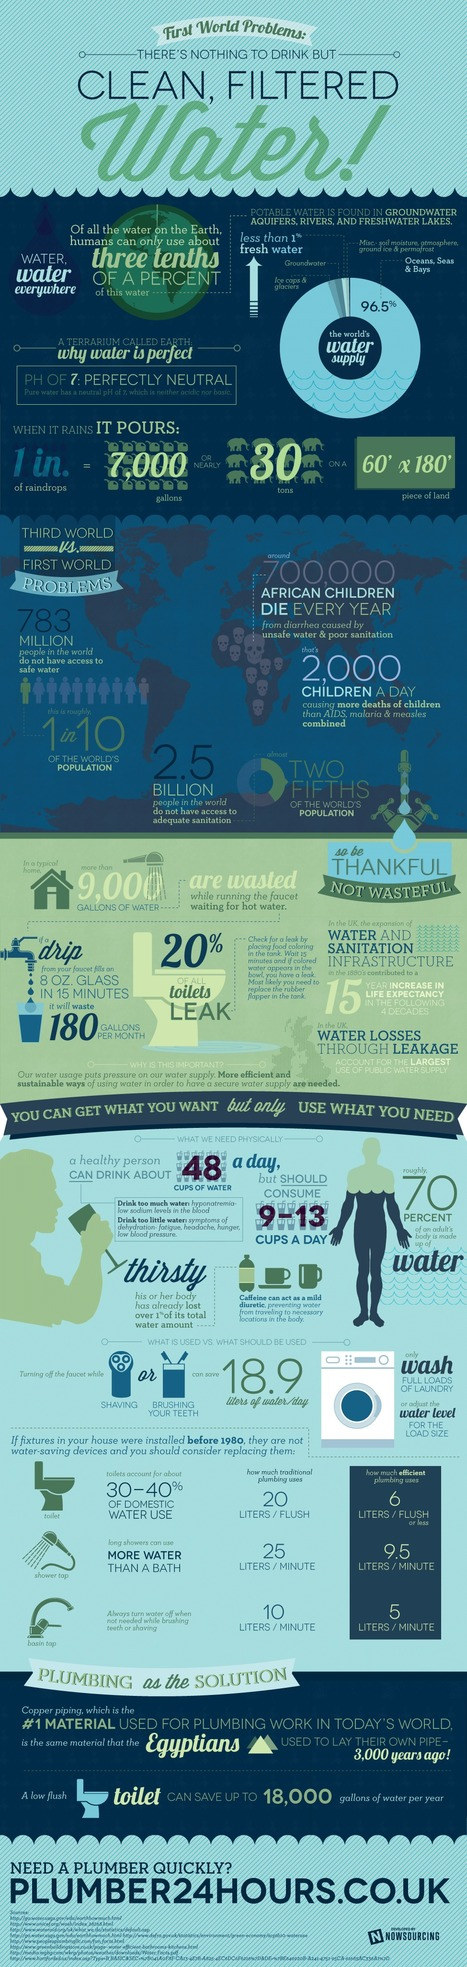 Water: Global facts + statistics [infographic] | green infographics | Scoop.it